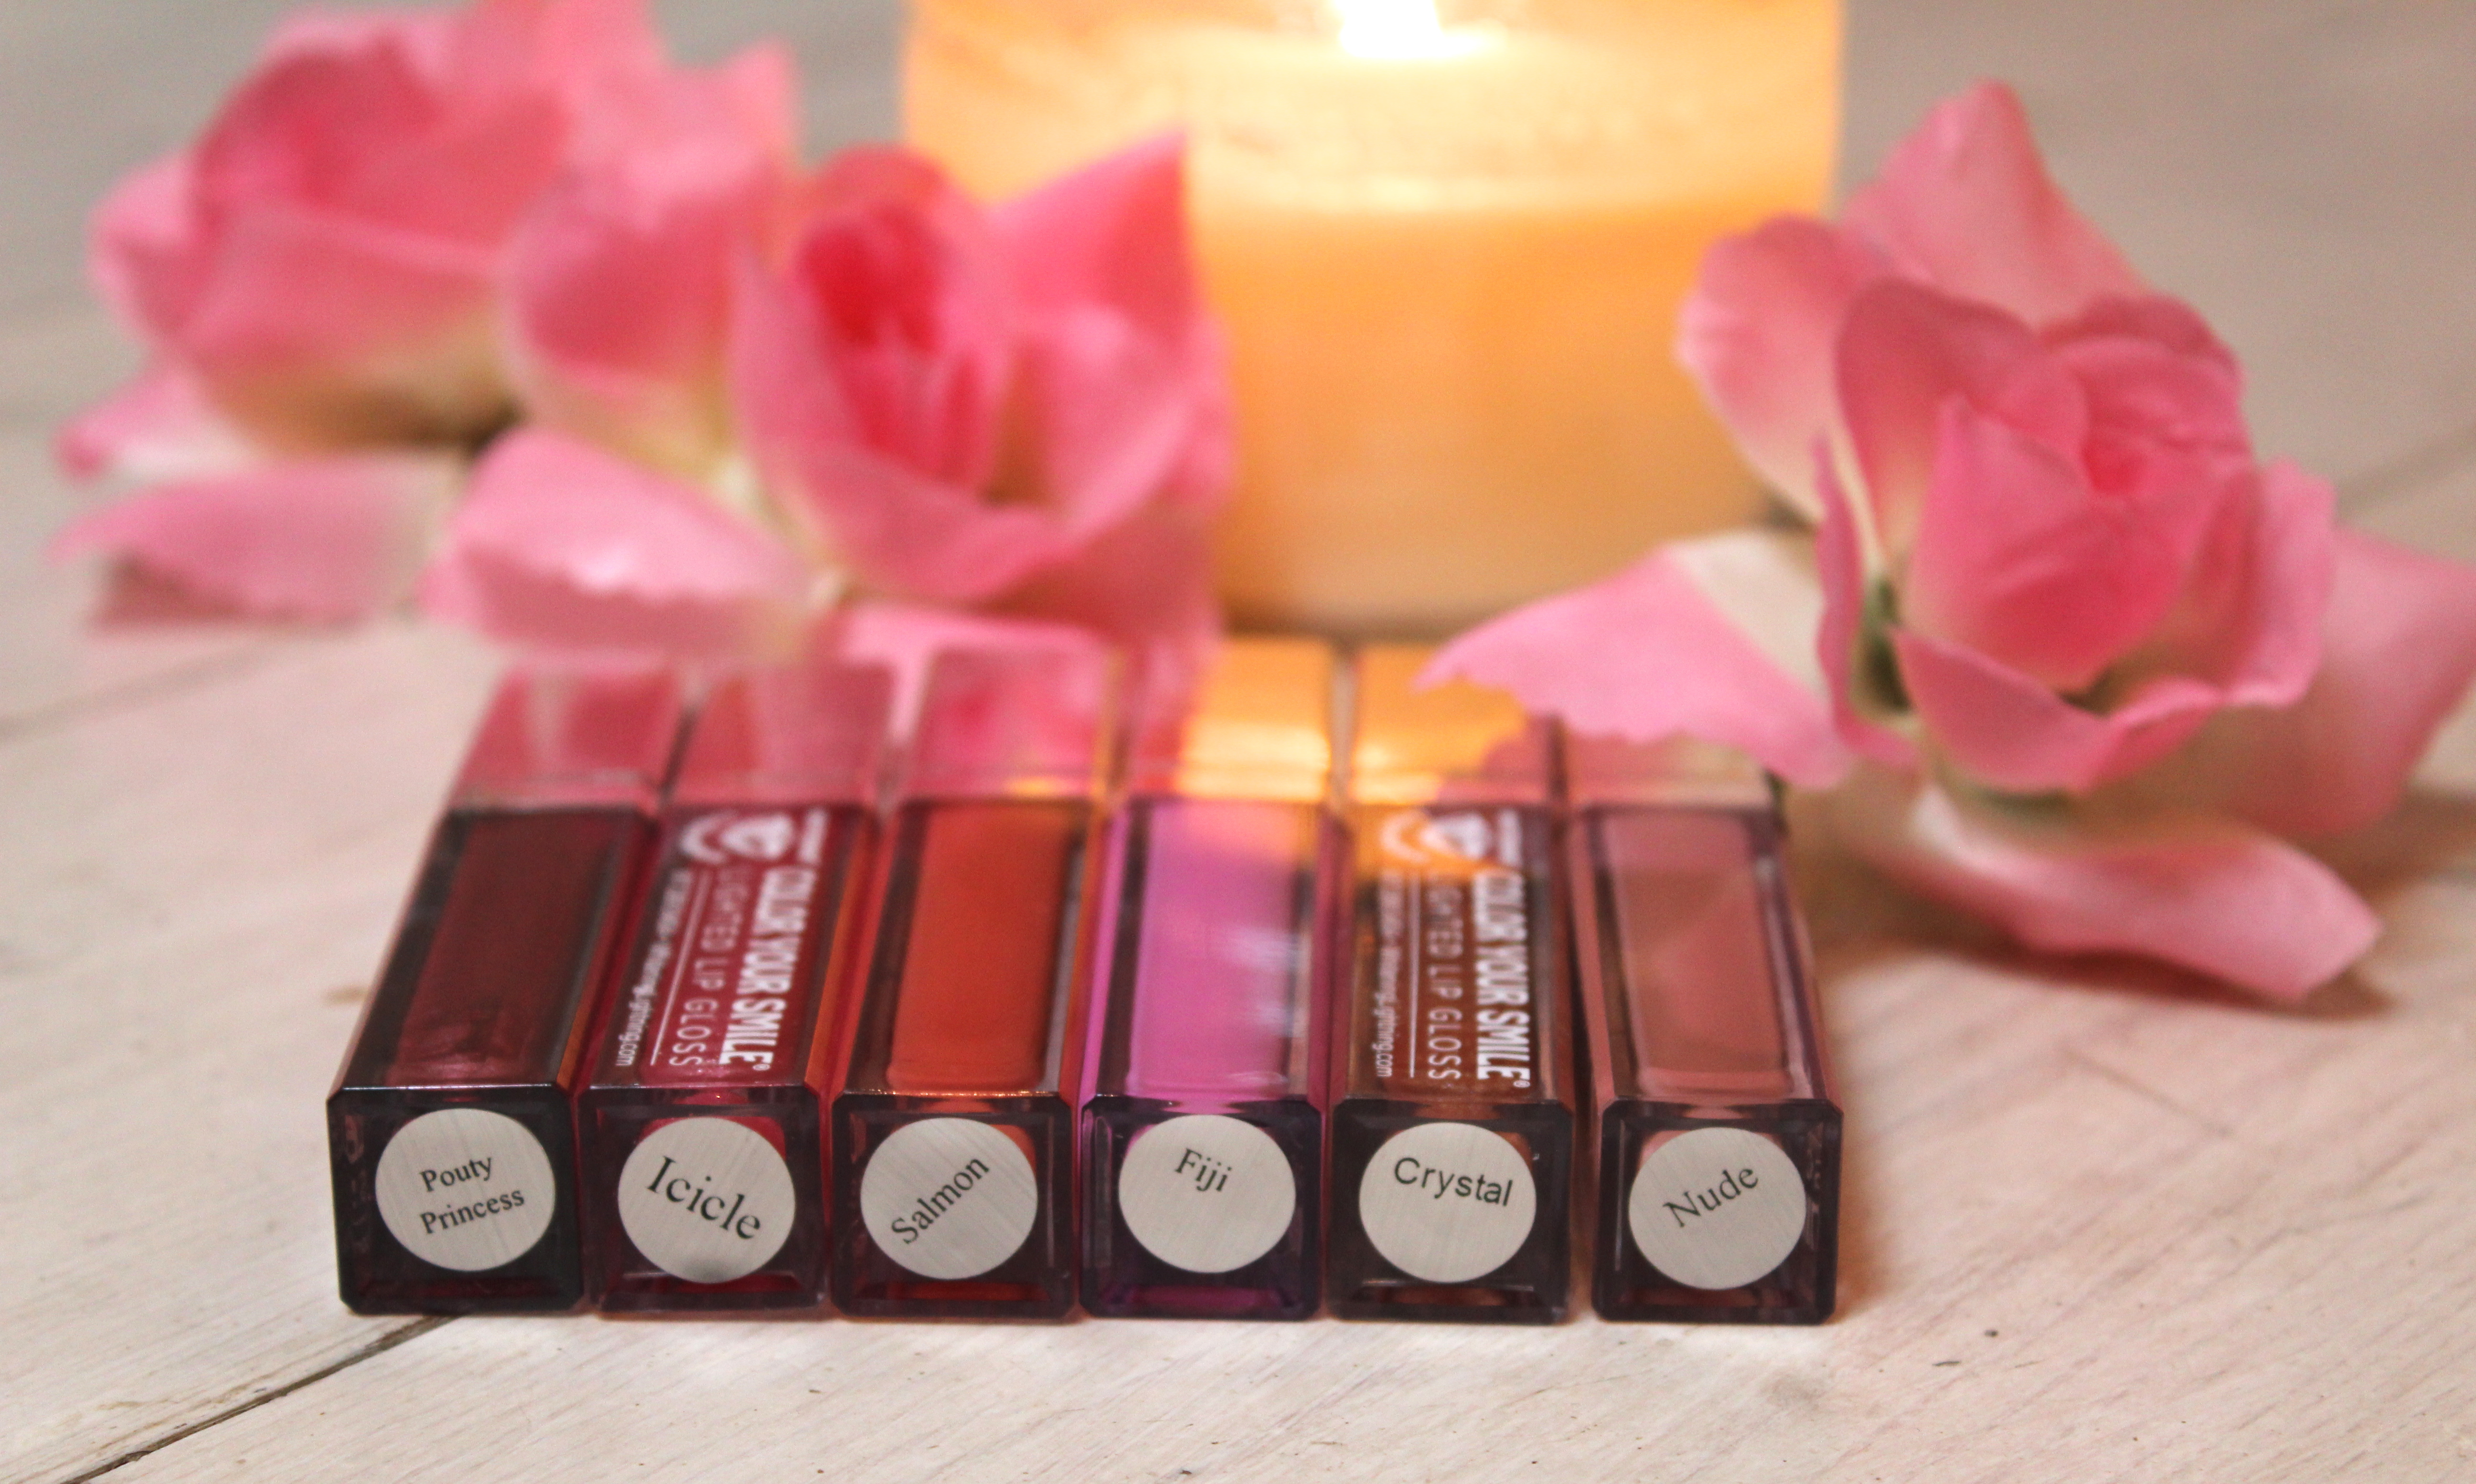 Whitening Lightning Color Your Smile Lipgloss Review